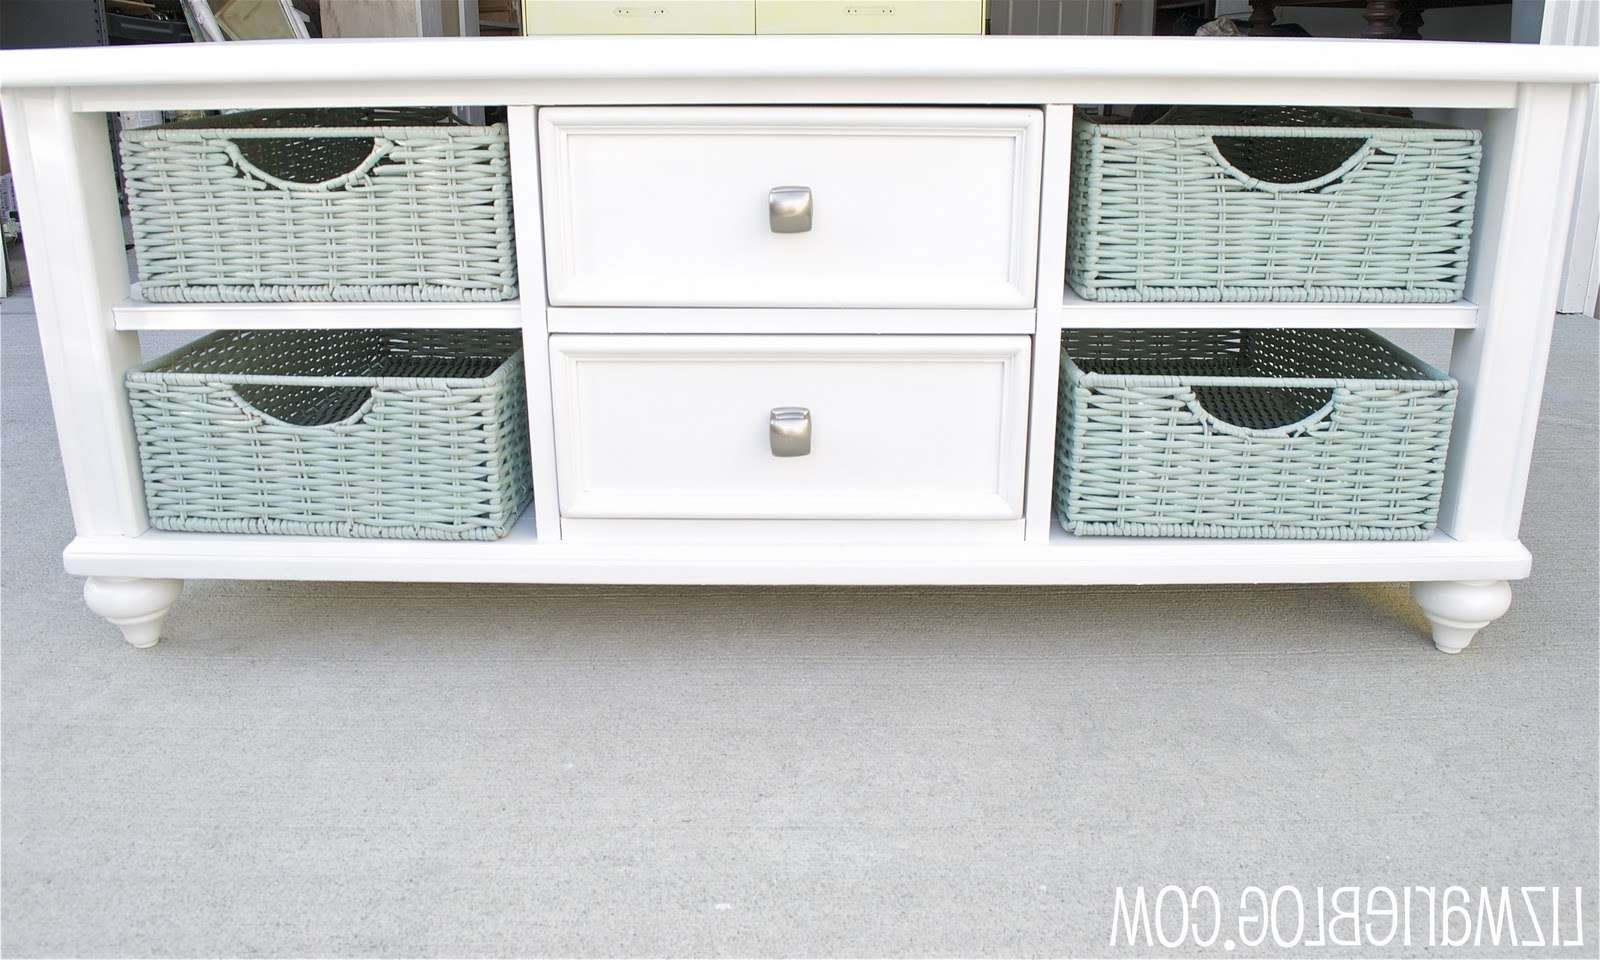 Coffee Table Facelift – Liz Marie Blog Intended For Favorite White Coffee Tables With Baskets (View 6 of 20)